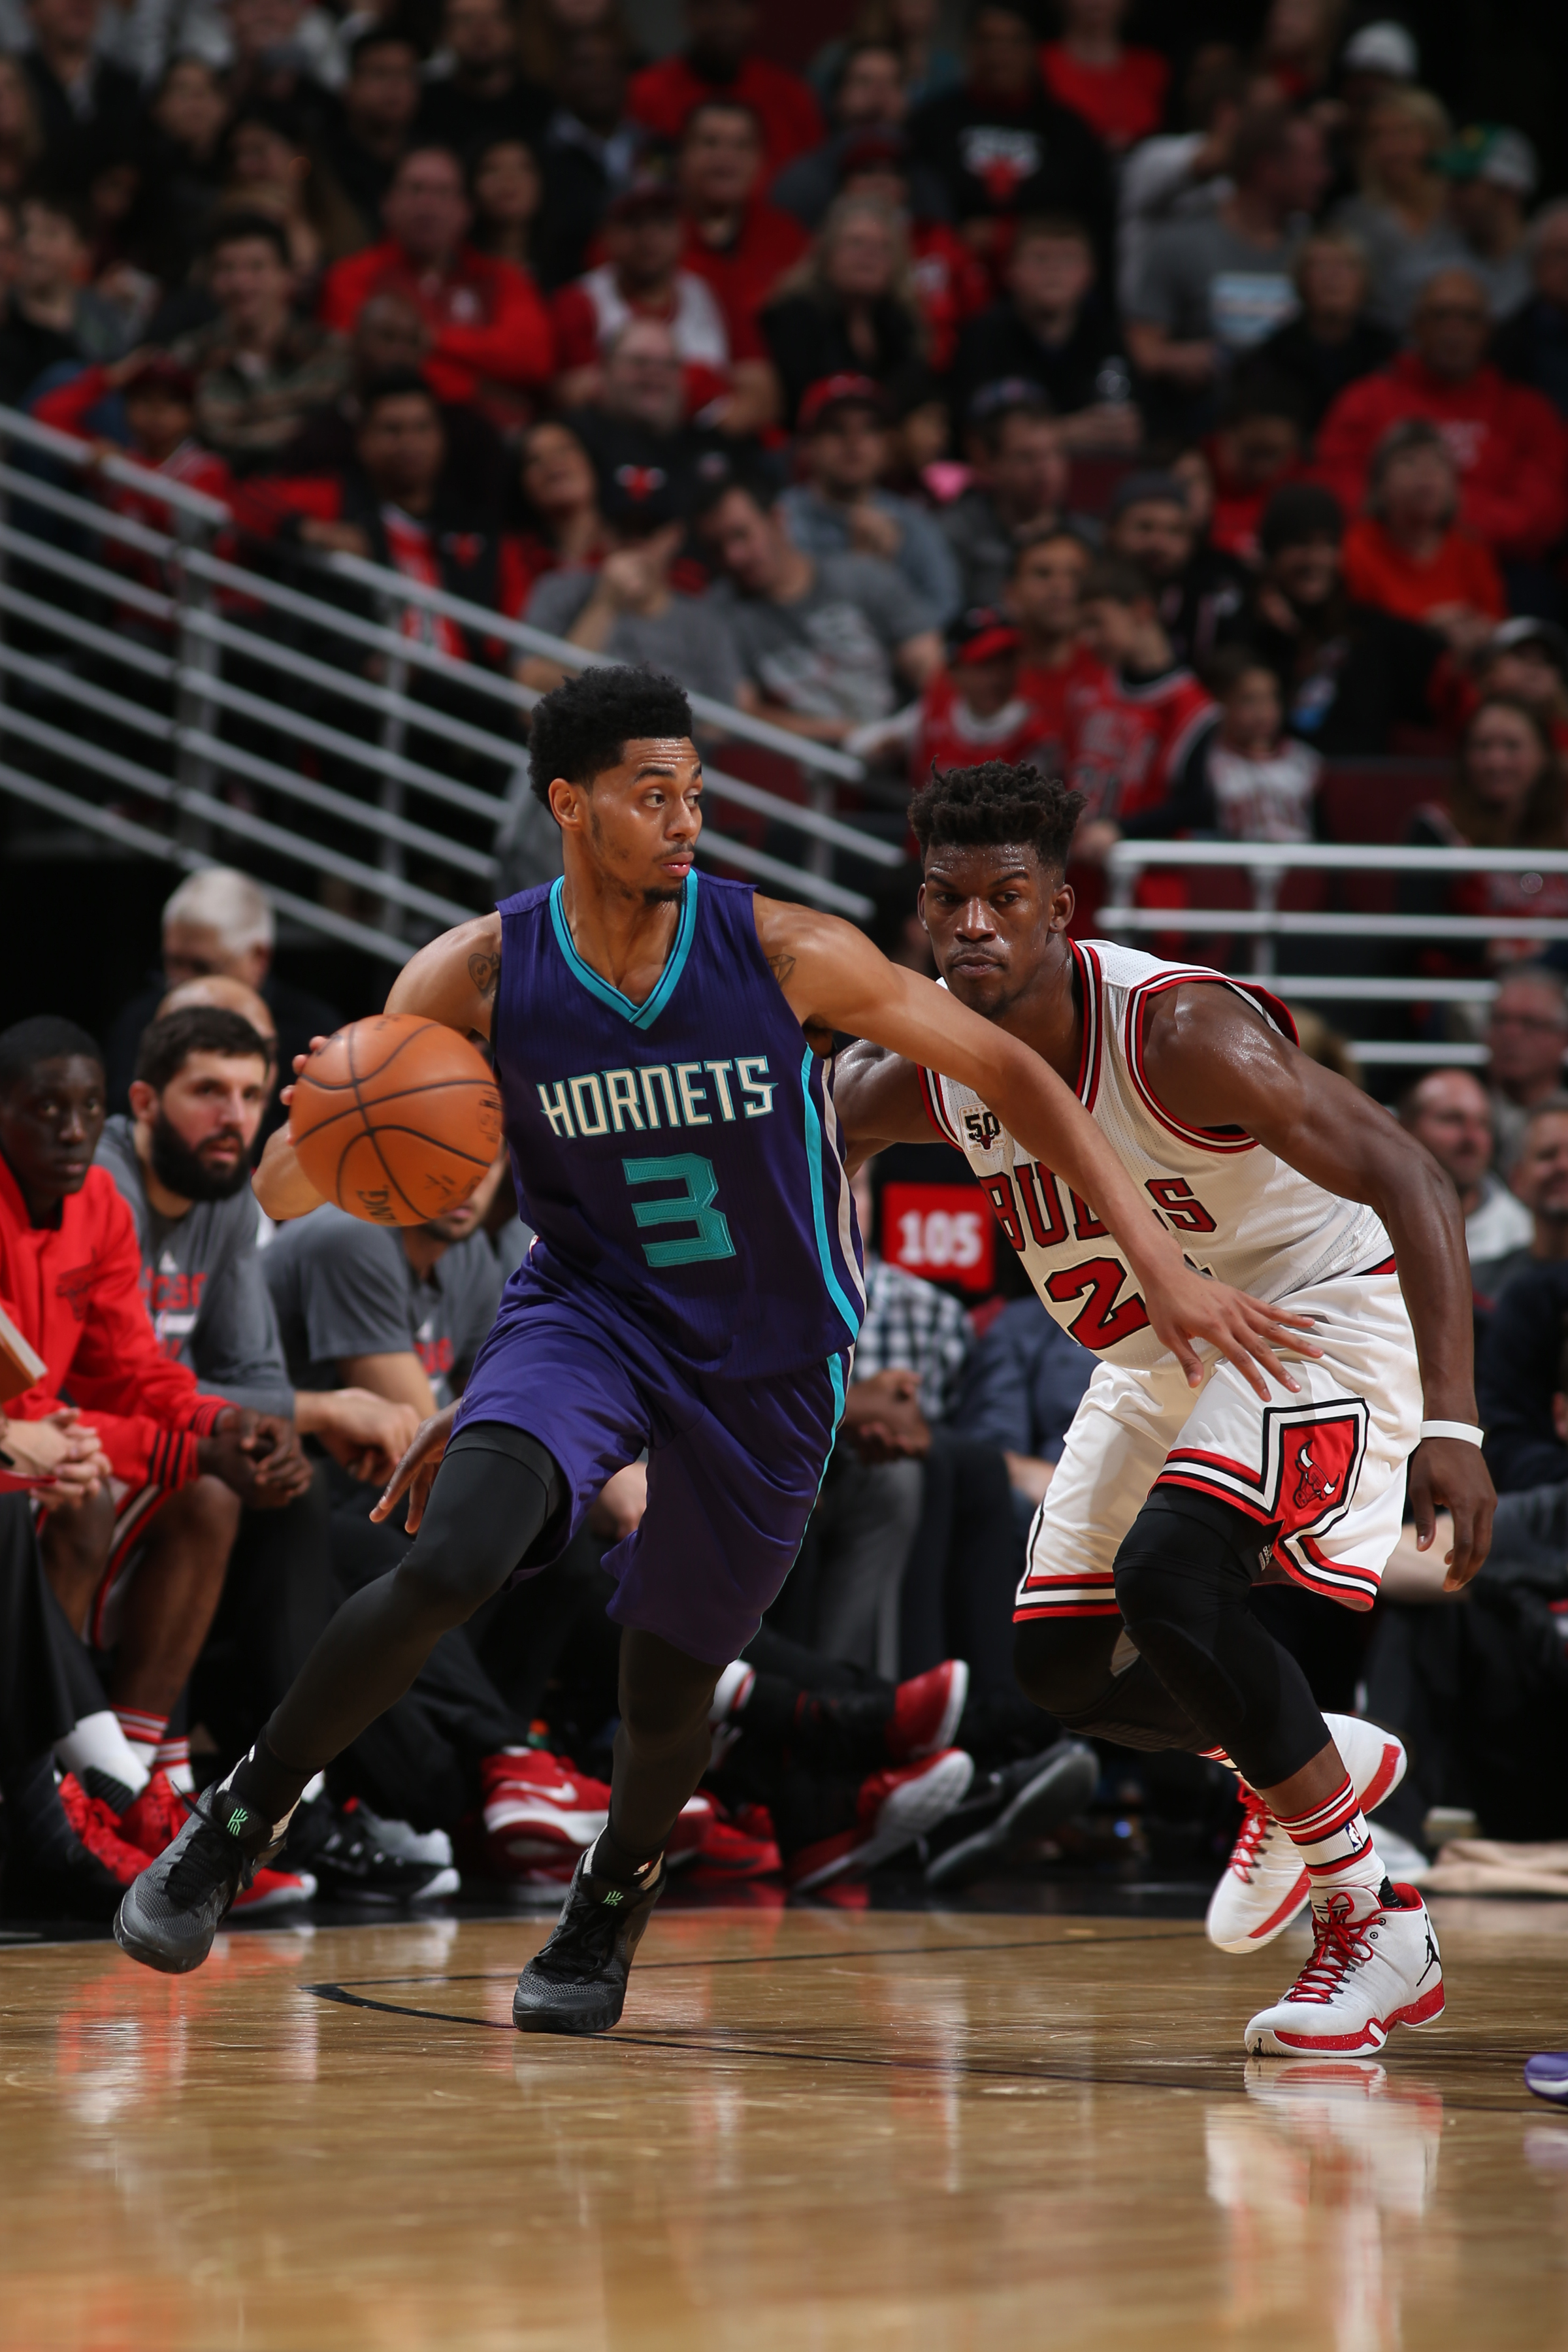 CHICAGO, IL - NOVEMBER 13: Jeremy Lamb #3 of the Charlotte Hornets handles the ball against the Chicago Bulls on November 13, 2015 at the United Center in Chicago, Illinois. (Photo by Gary Dineen/NBAE via Getty Images)